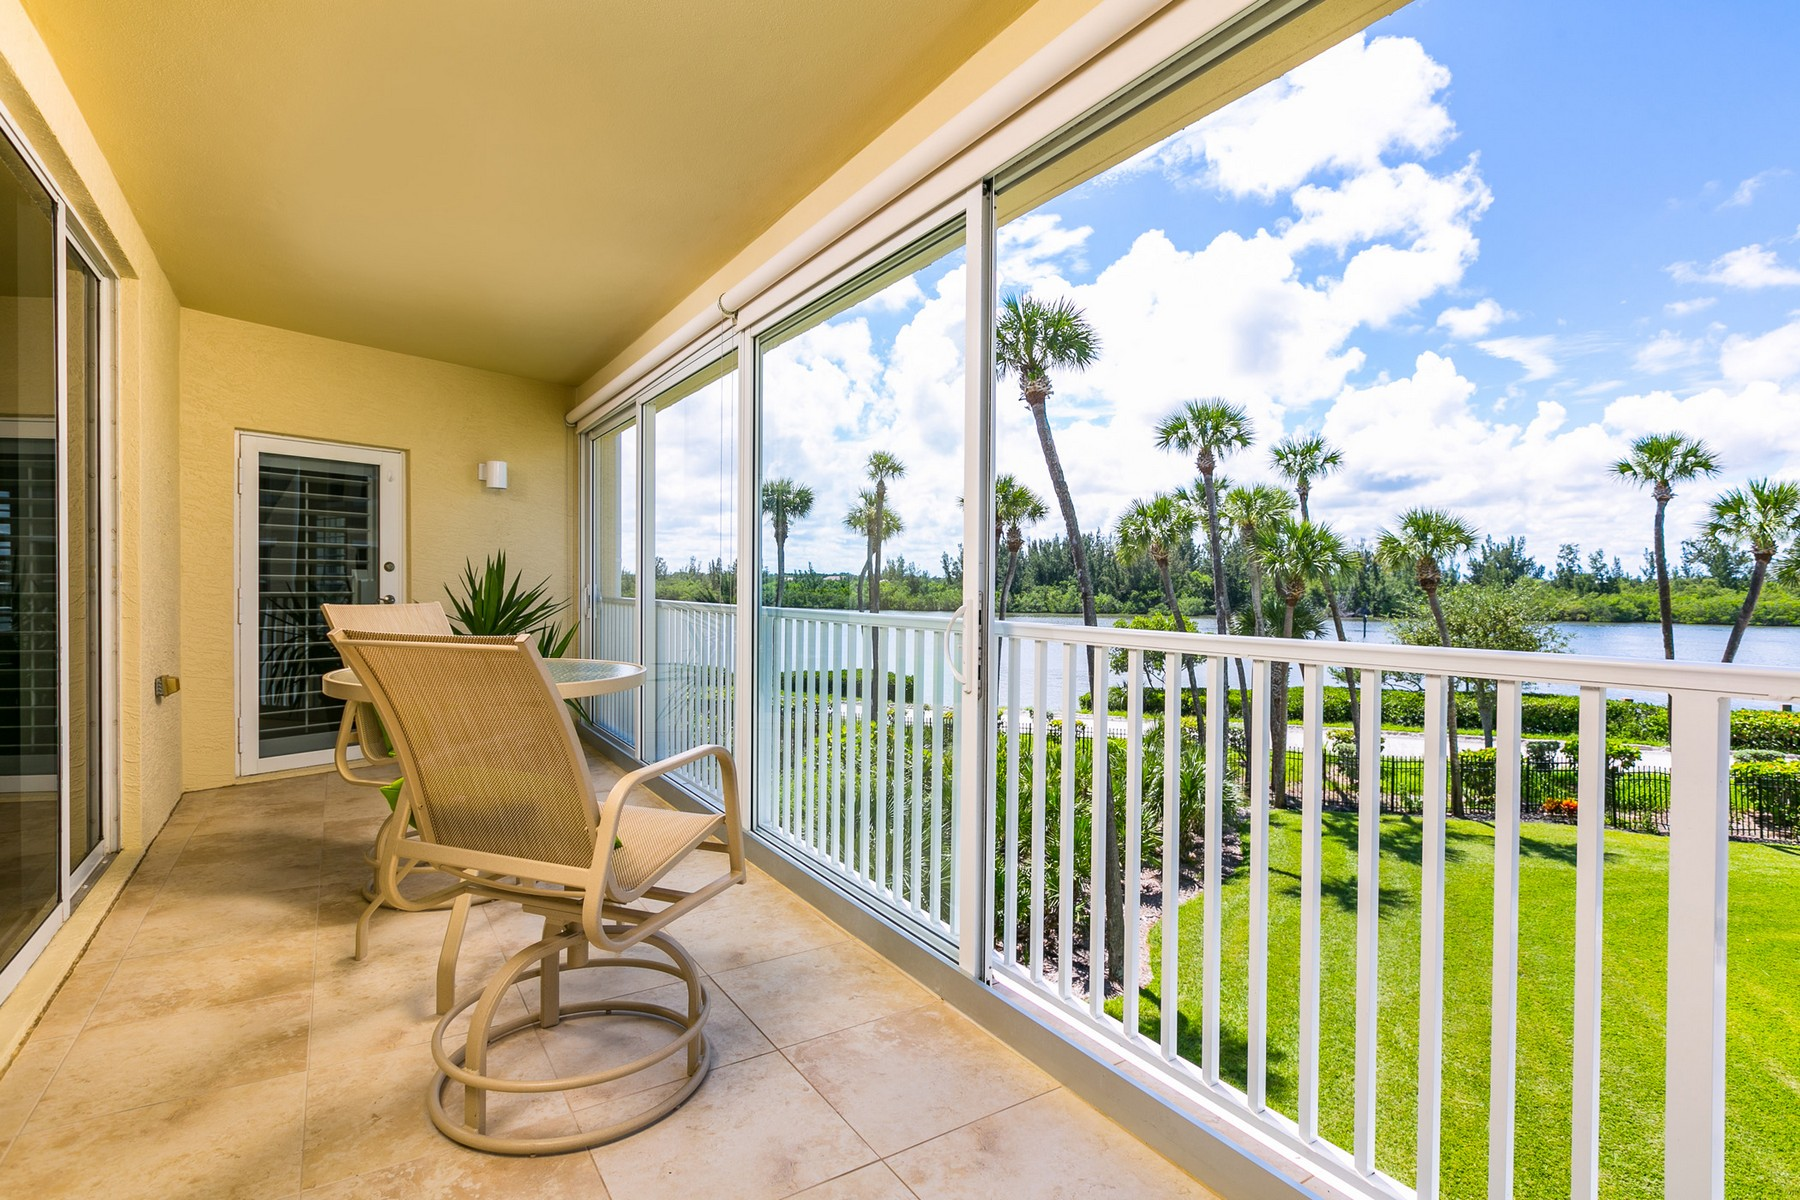 Condominio por un Venta en Sea Oaks Villa by the River 8875 W Orchid Island Circle #304 Vero Beach, Florida 32963 Estados Unidos